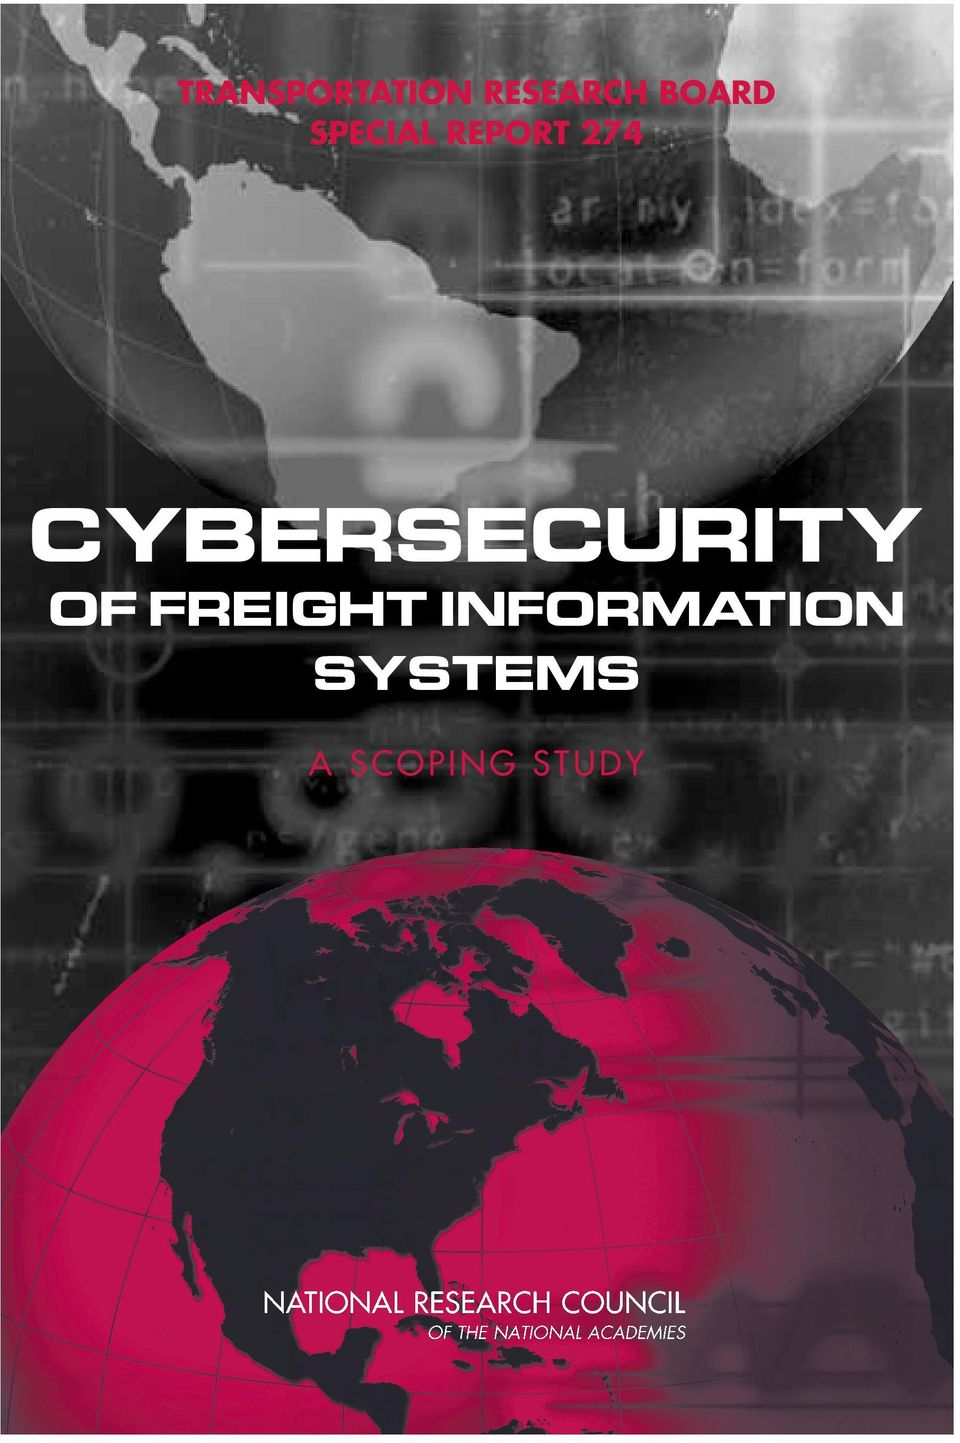 CYBERSECURITY OF FREIGHT